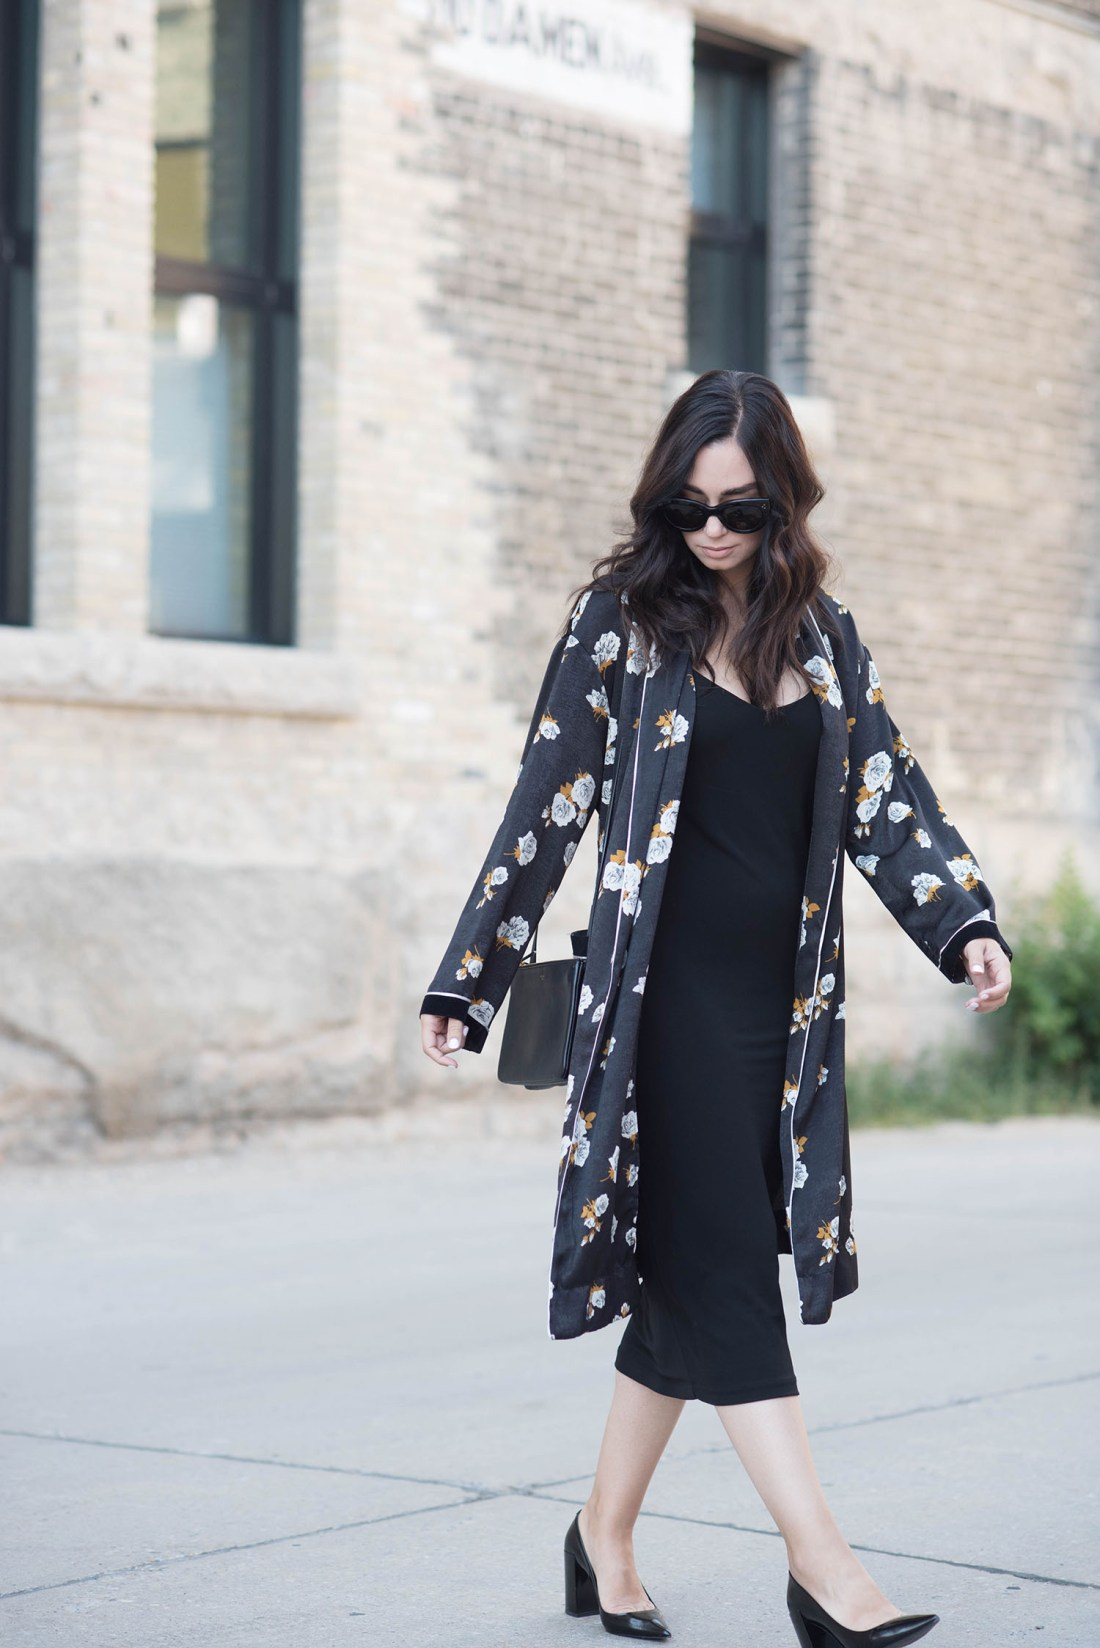 Fashion blogger Cee Fardoe of Coco & Vera walks in the Exchange District of Winnipeg wearing a Zara combined kimono and Pierre Hardy block heels, carrying a Celine trio bag